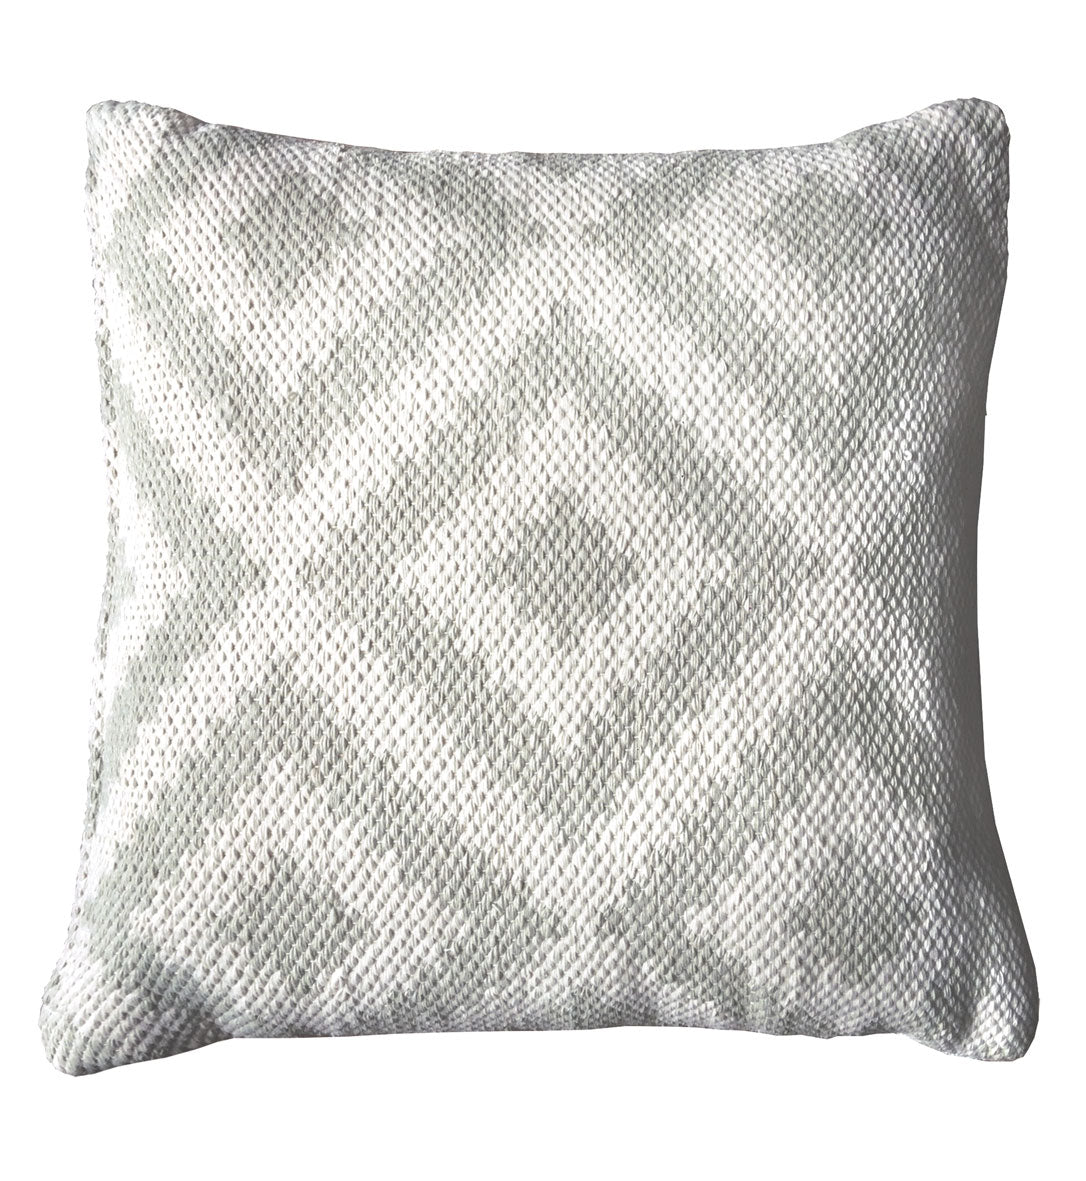 Silver Light Cream Outdoor Cushions Recycled Polyprop Green Decore